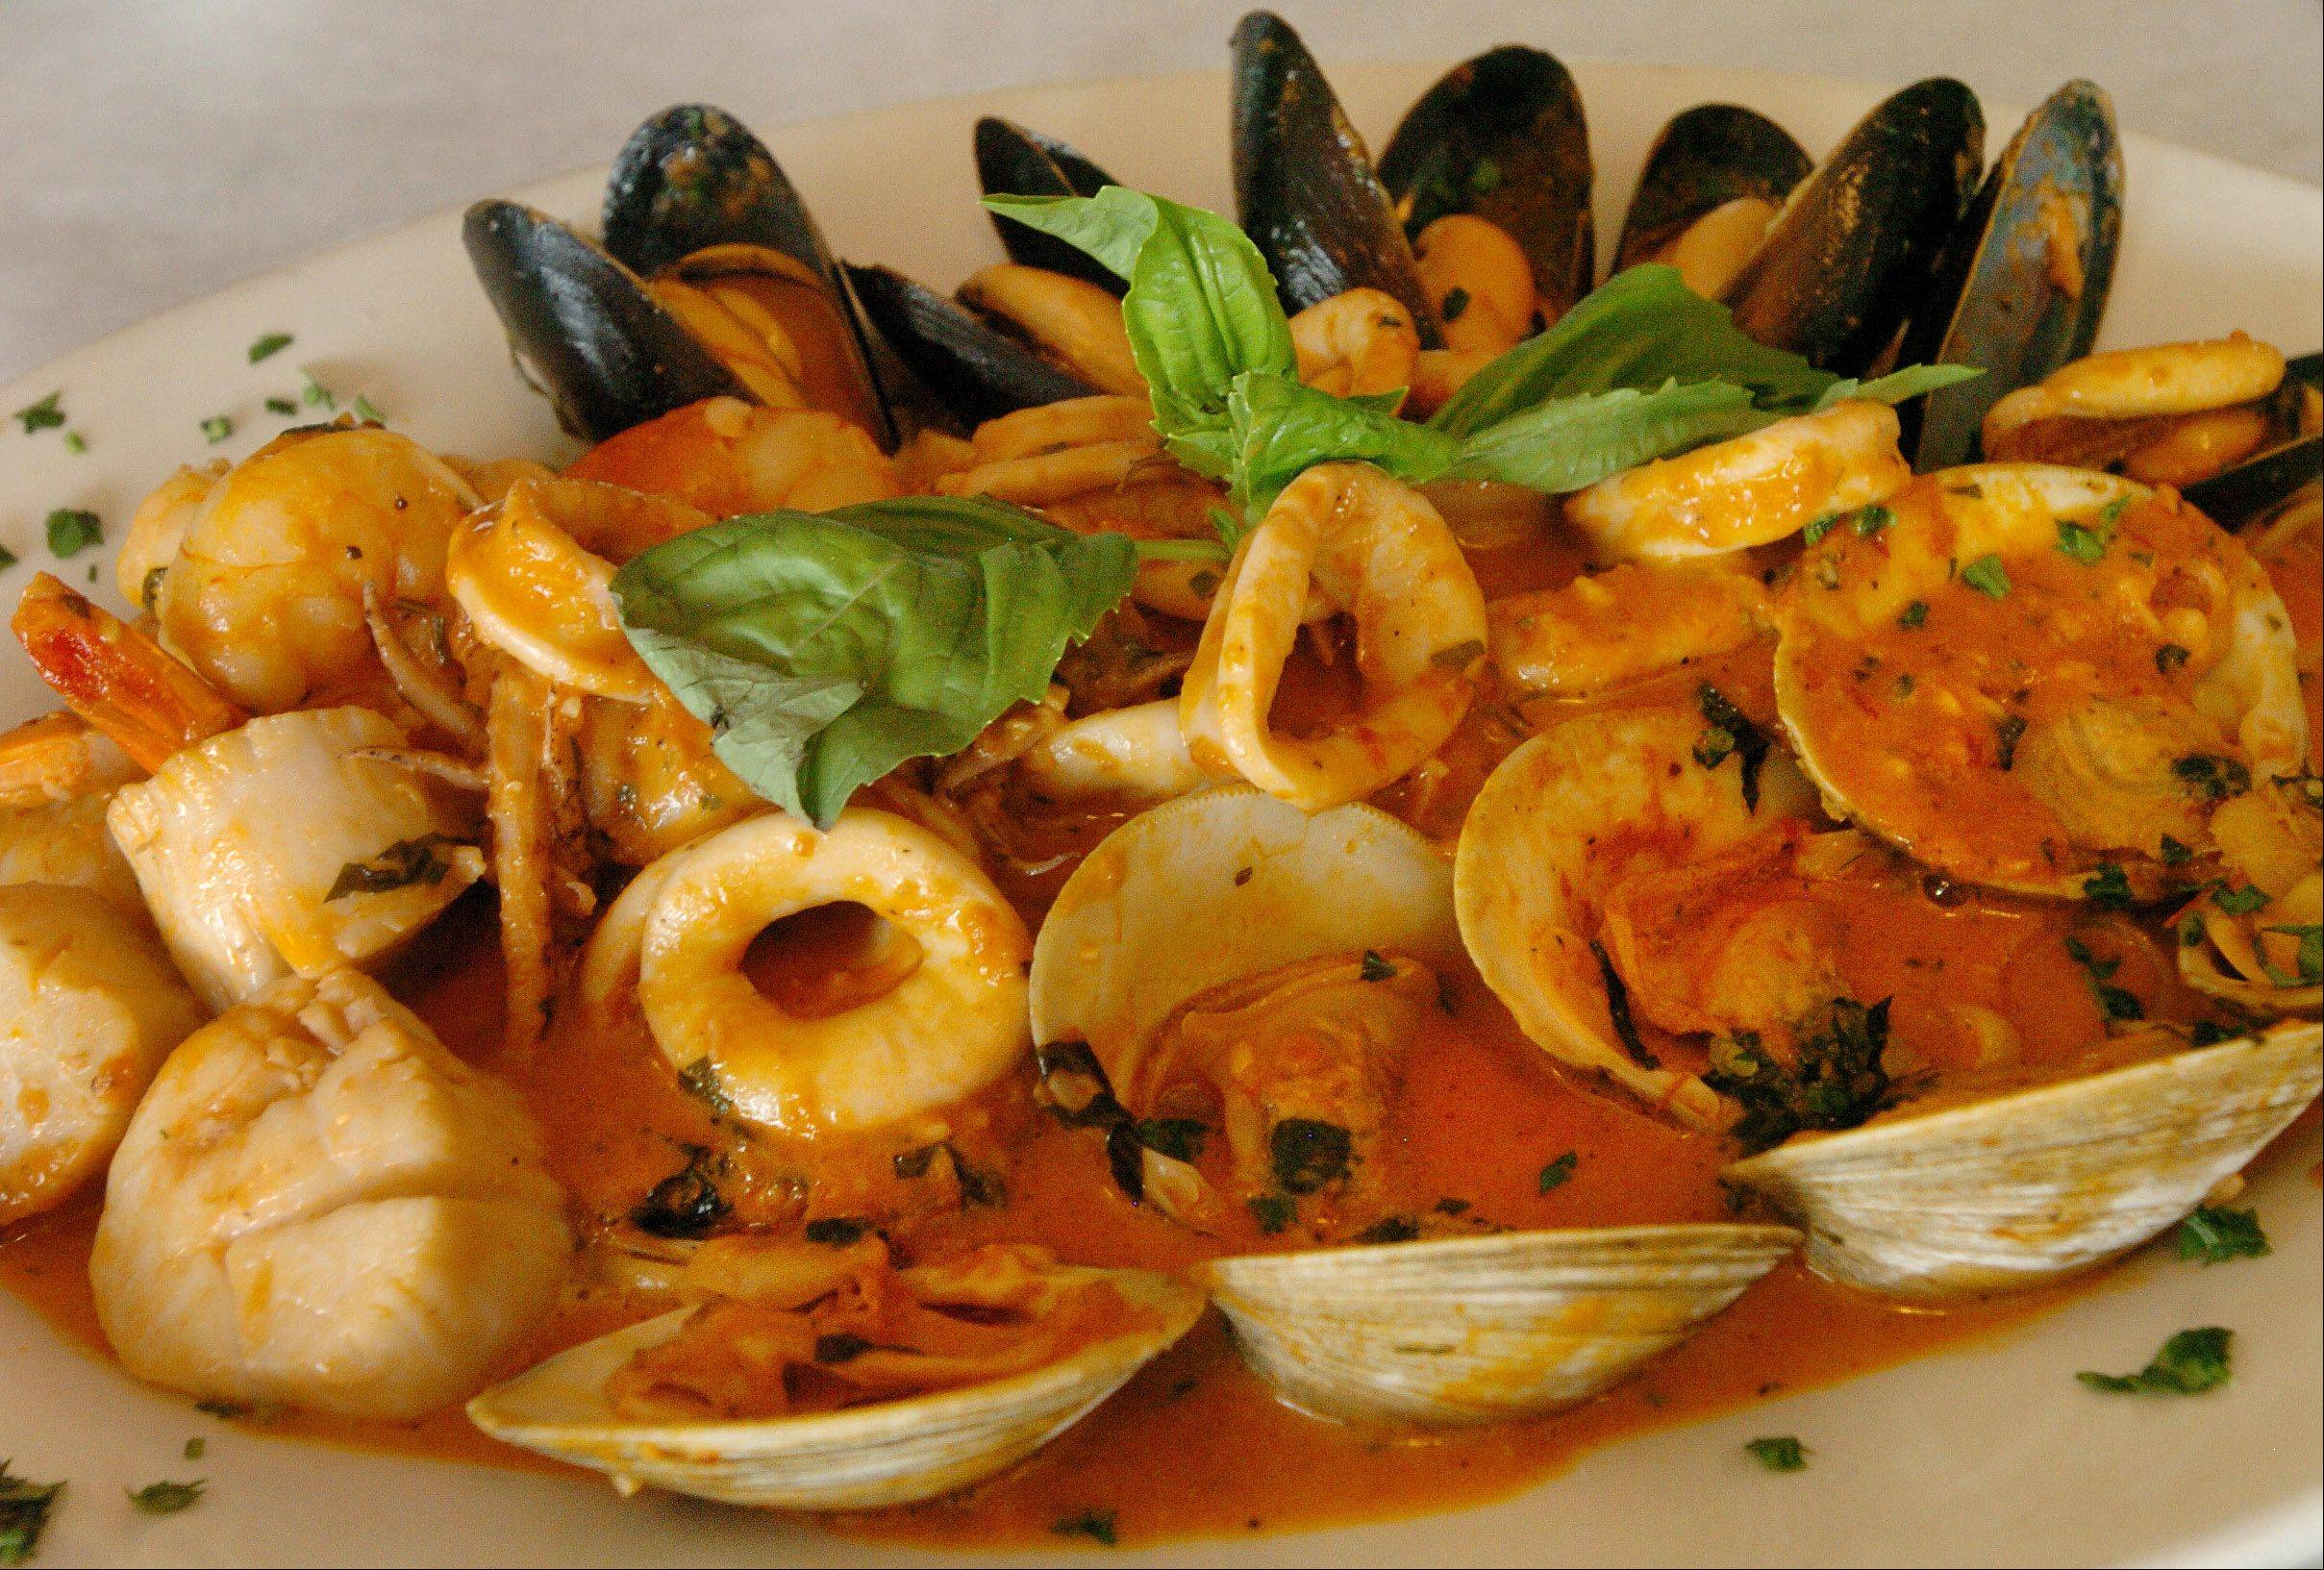 Italian seafood preparations, like this Linguine Pescatora, are abundant at DiBenedetto Trattoria in Hoffman Estates.